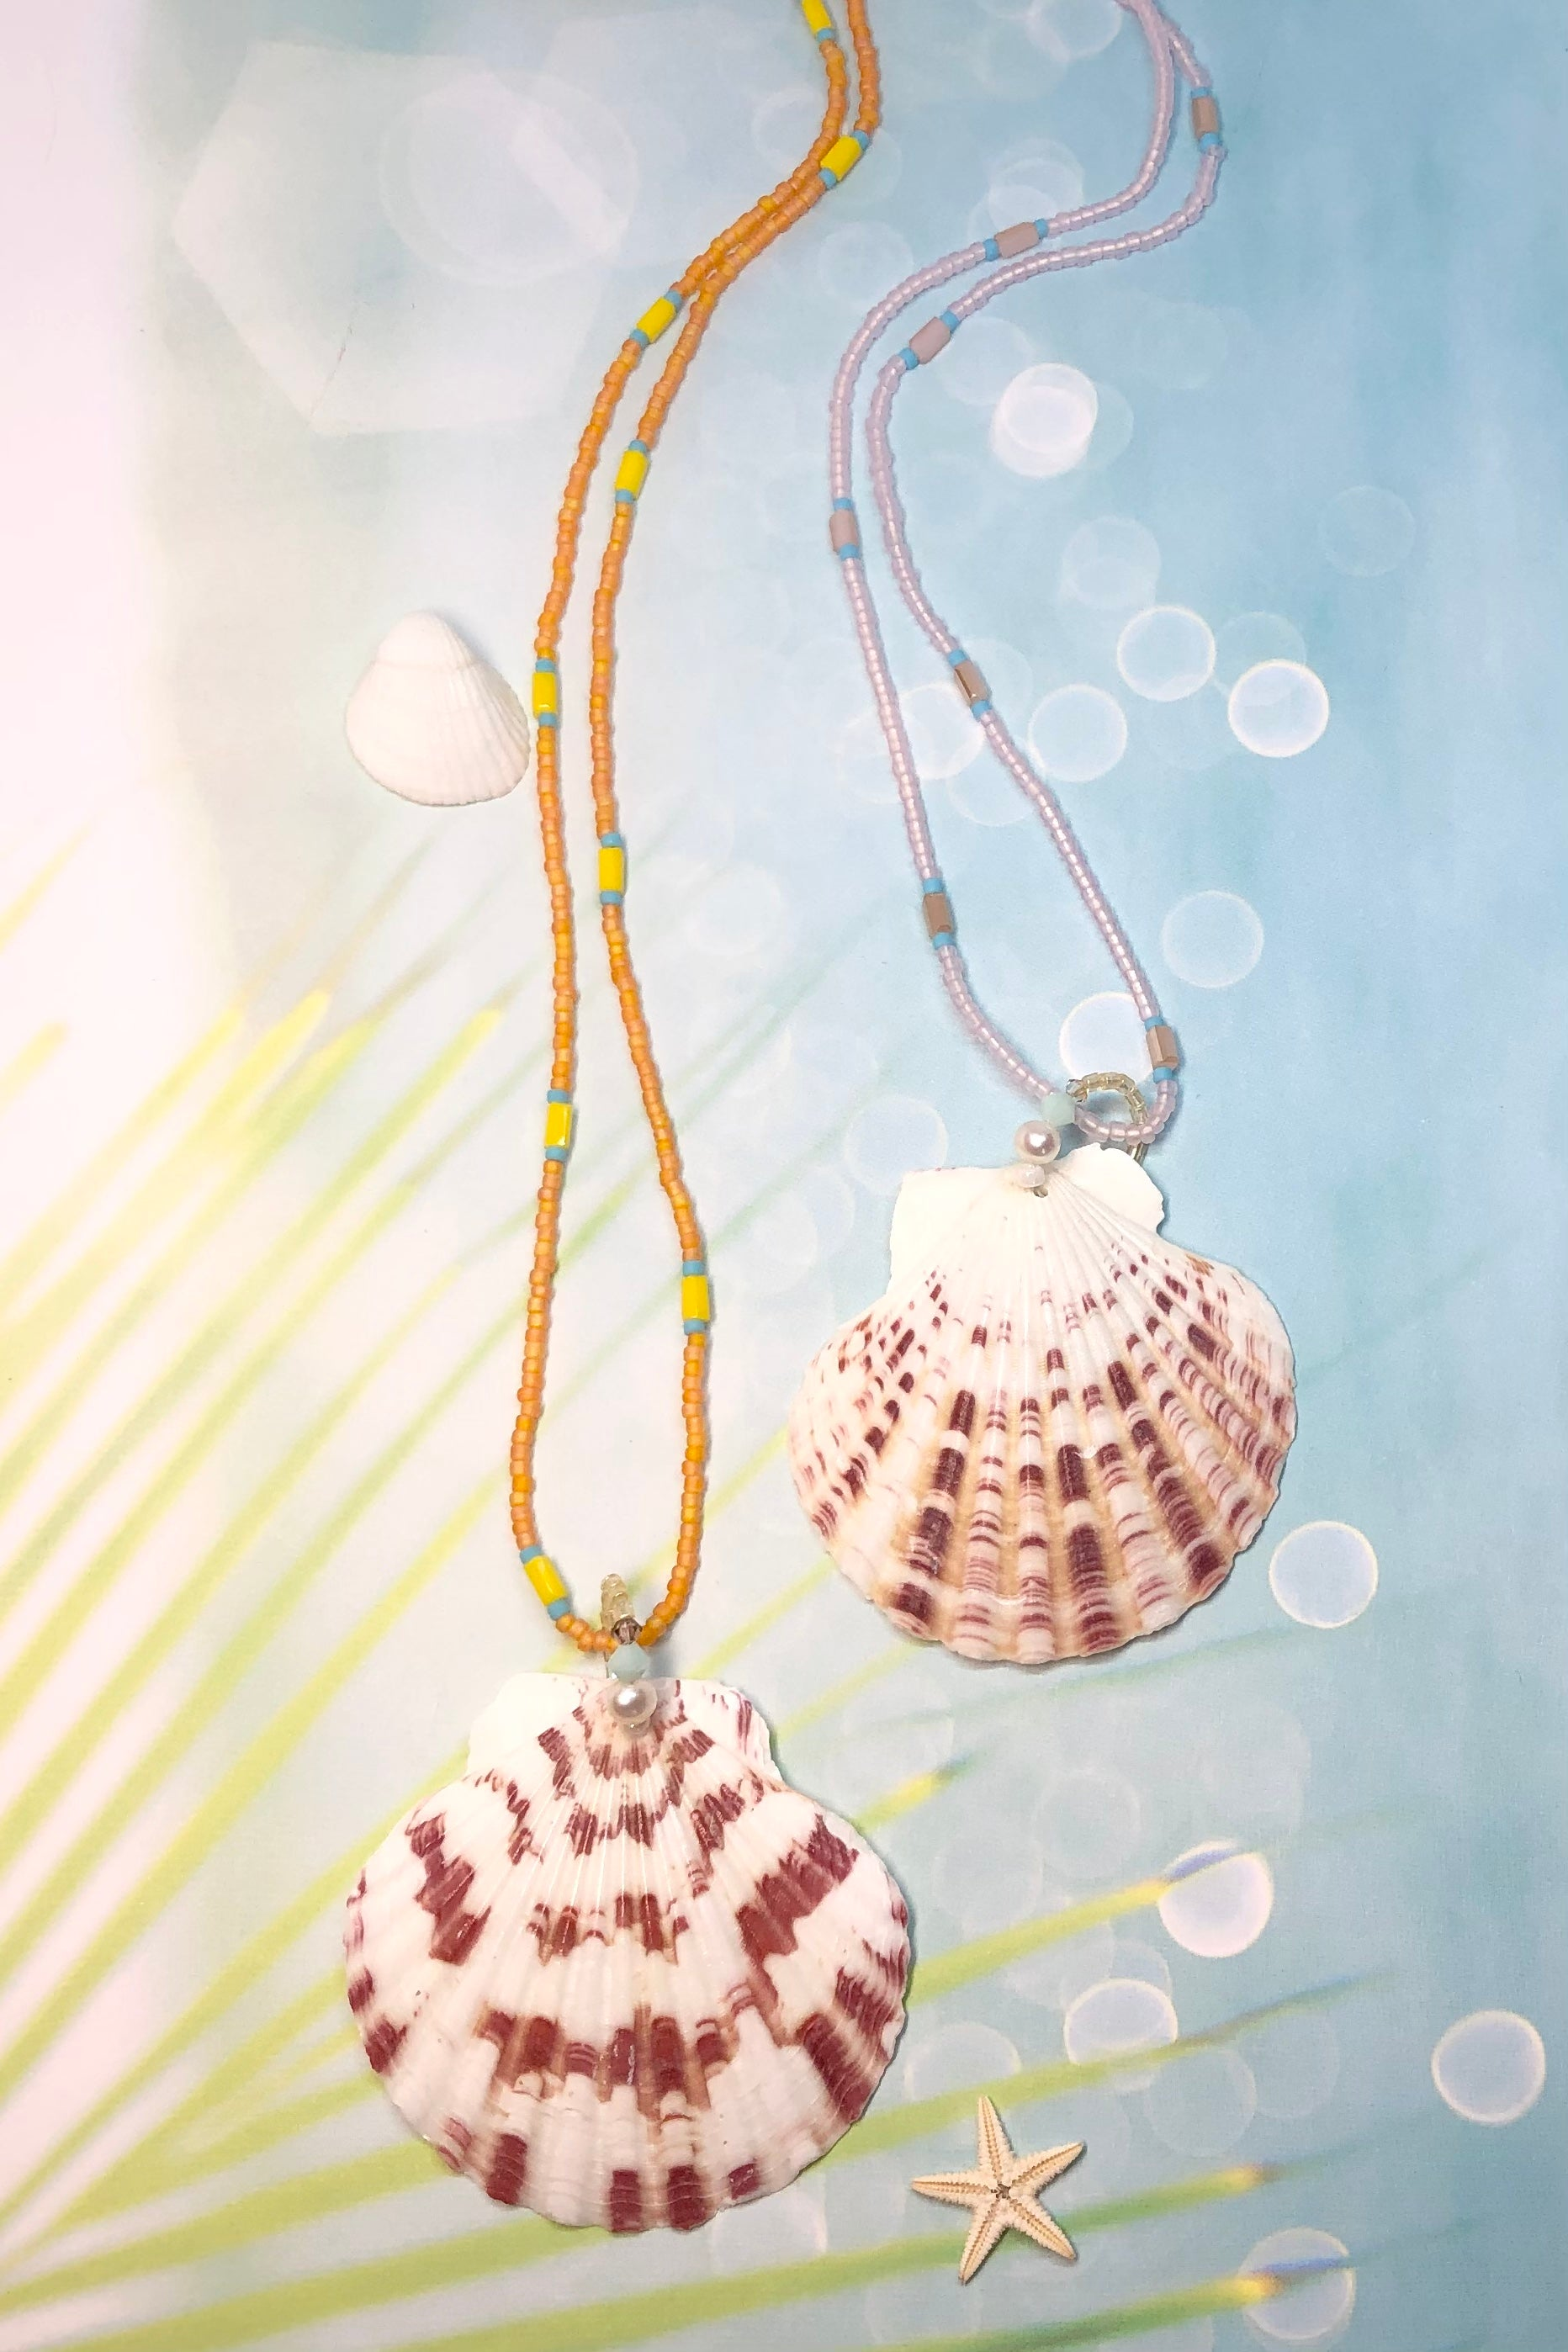 A stunning sea shell necklace with an island vibe, every sea shell is different, every necklace tells a story.